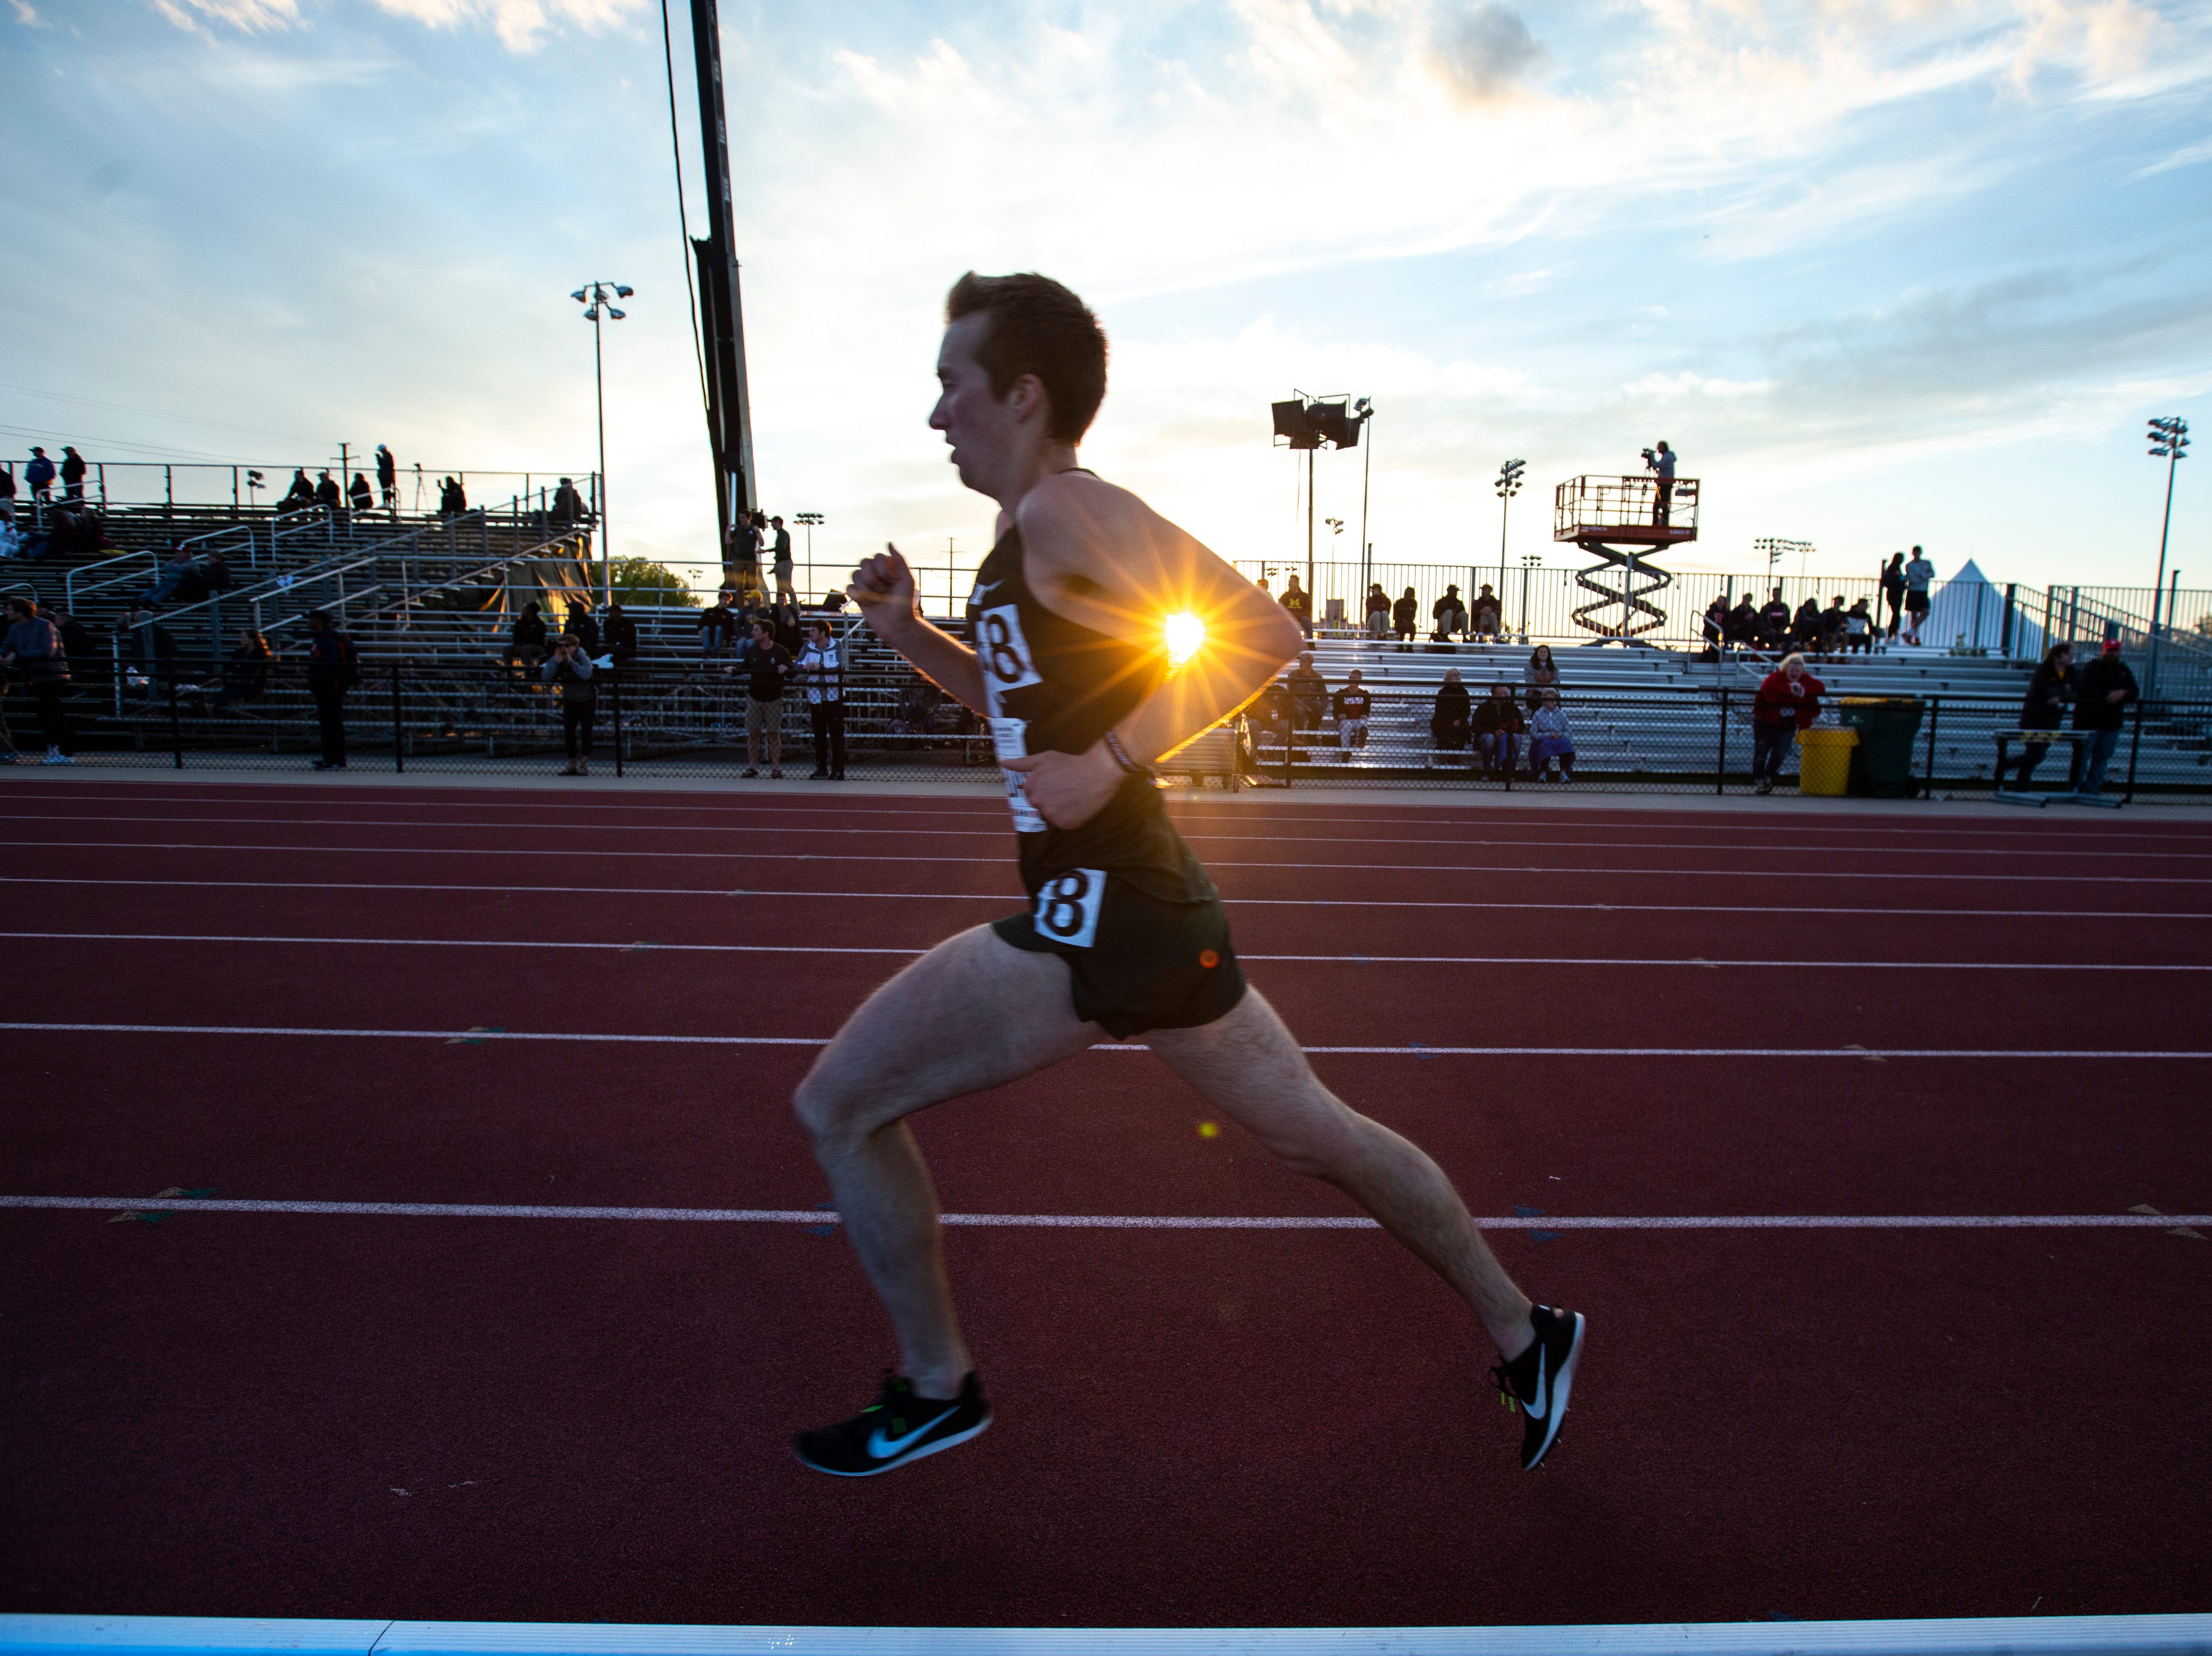 A burst of sun break through the arm of Michigan State sophomore Joe Riordan as he runs towards the front stretch while competing in the 10,000 meters during the first night of Big Ten track and field outdoor championships, Friday, May 10, 2019, at Francis X. Cretzmeyer Track on the University of Iowa campus in Iowa City, Iowa.